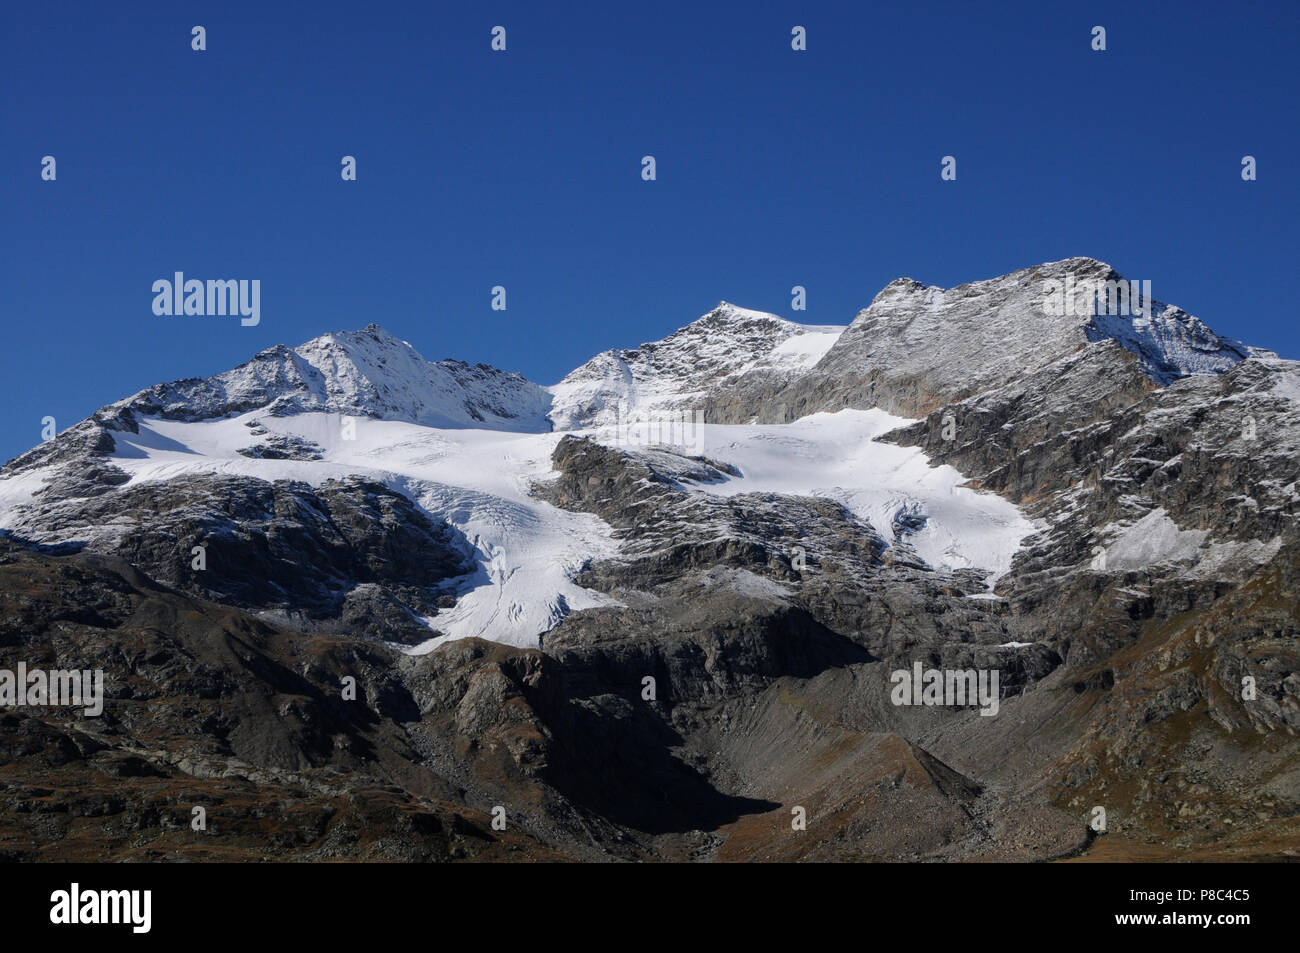 Swiss Alps: Melting glaciers and permafrost at Bernina mountains in the upper engadin - Stock Image